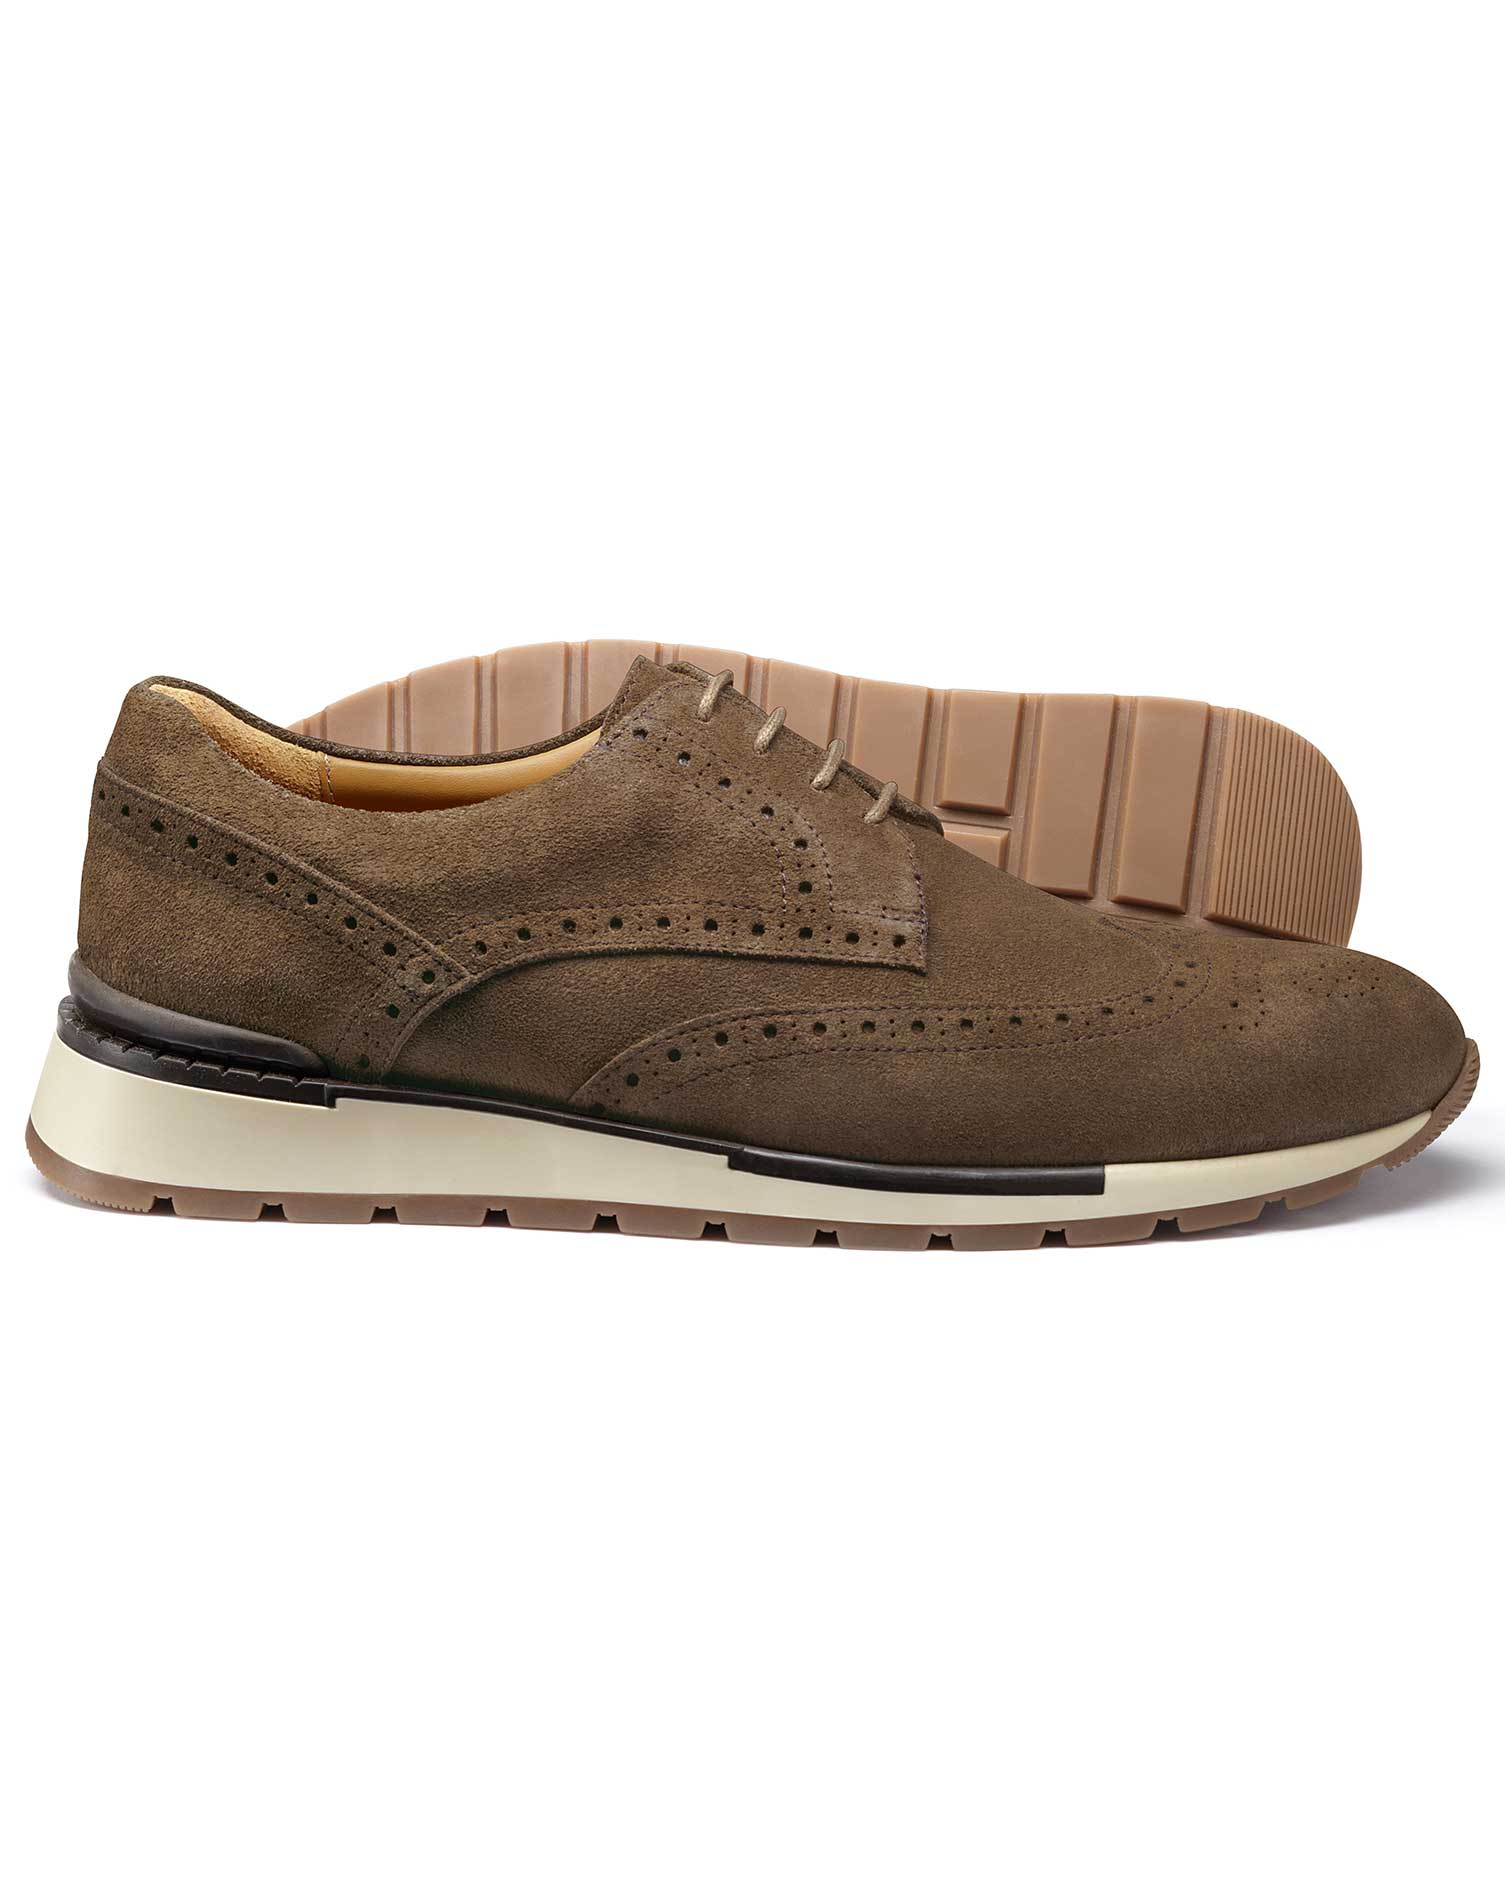 Tan Suede Wingtip Derby Trainer Size 8 R by Charles Tyrwhitt